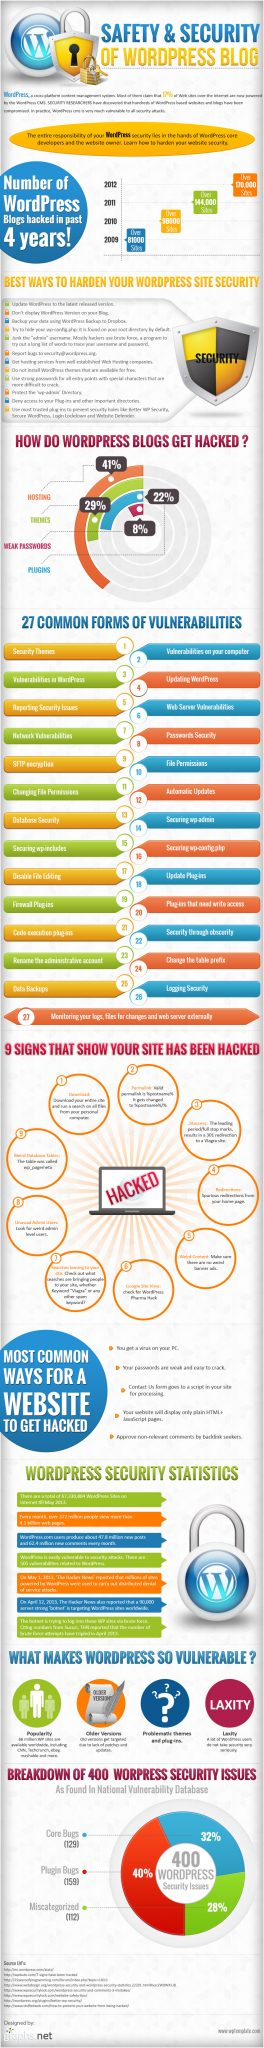 Safety-and-Security-of-WordPress-Blog-Infographic.jpg